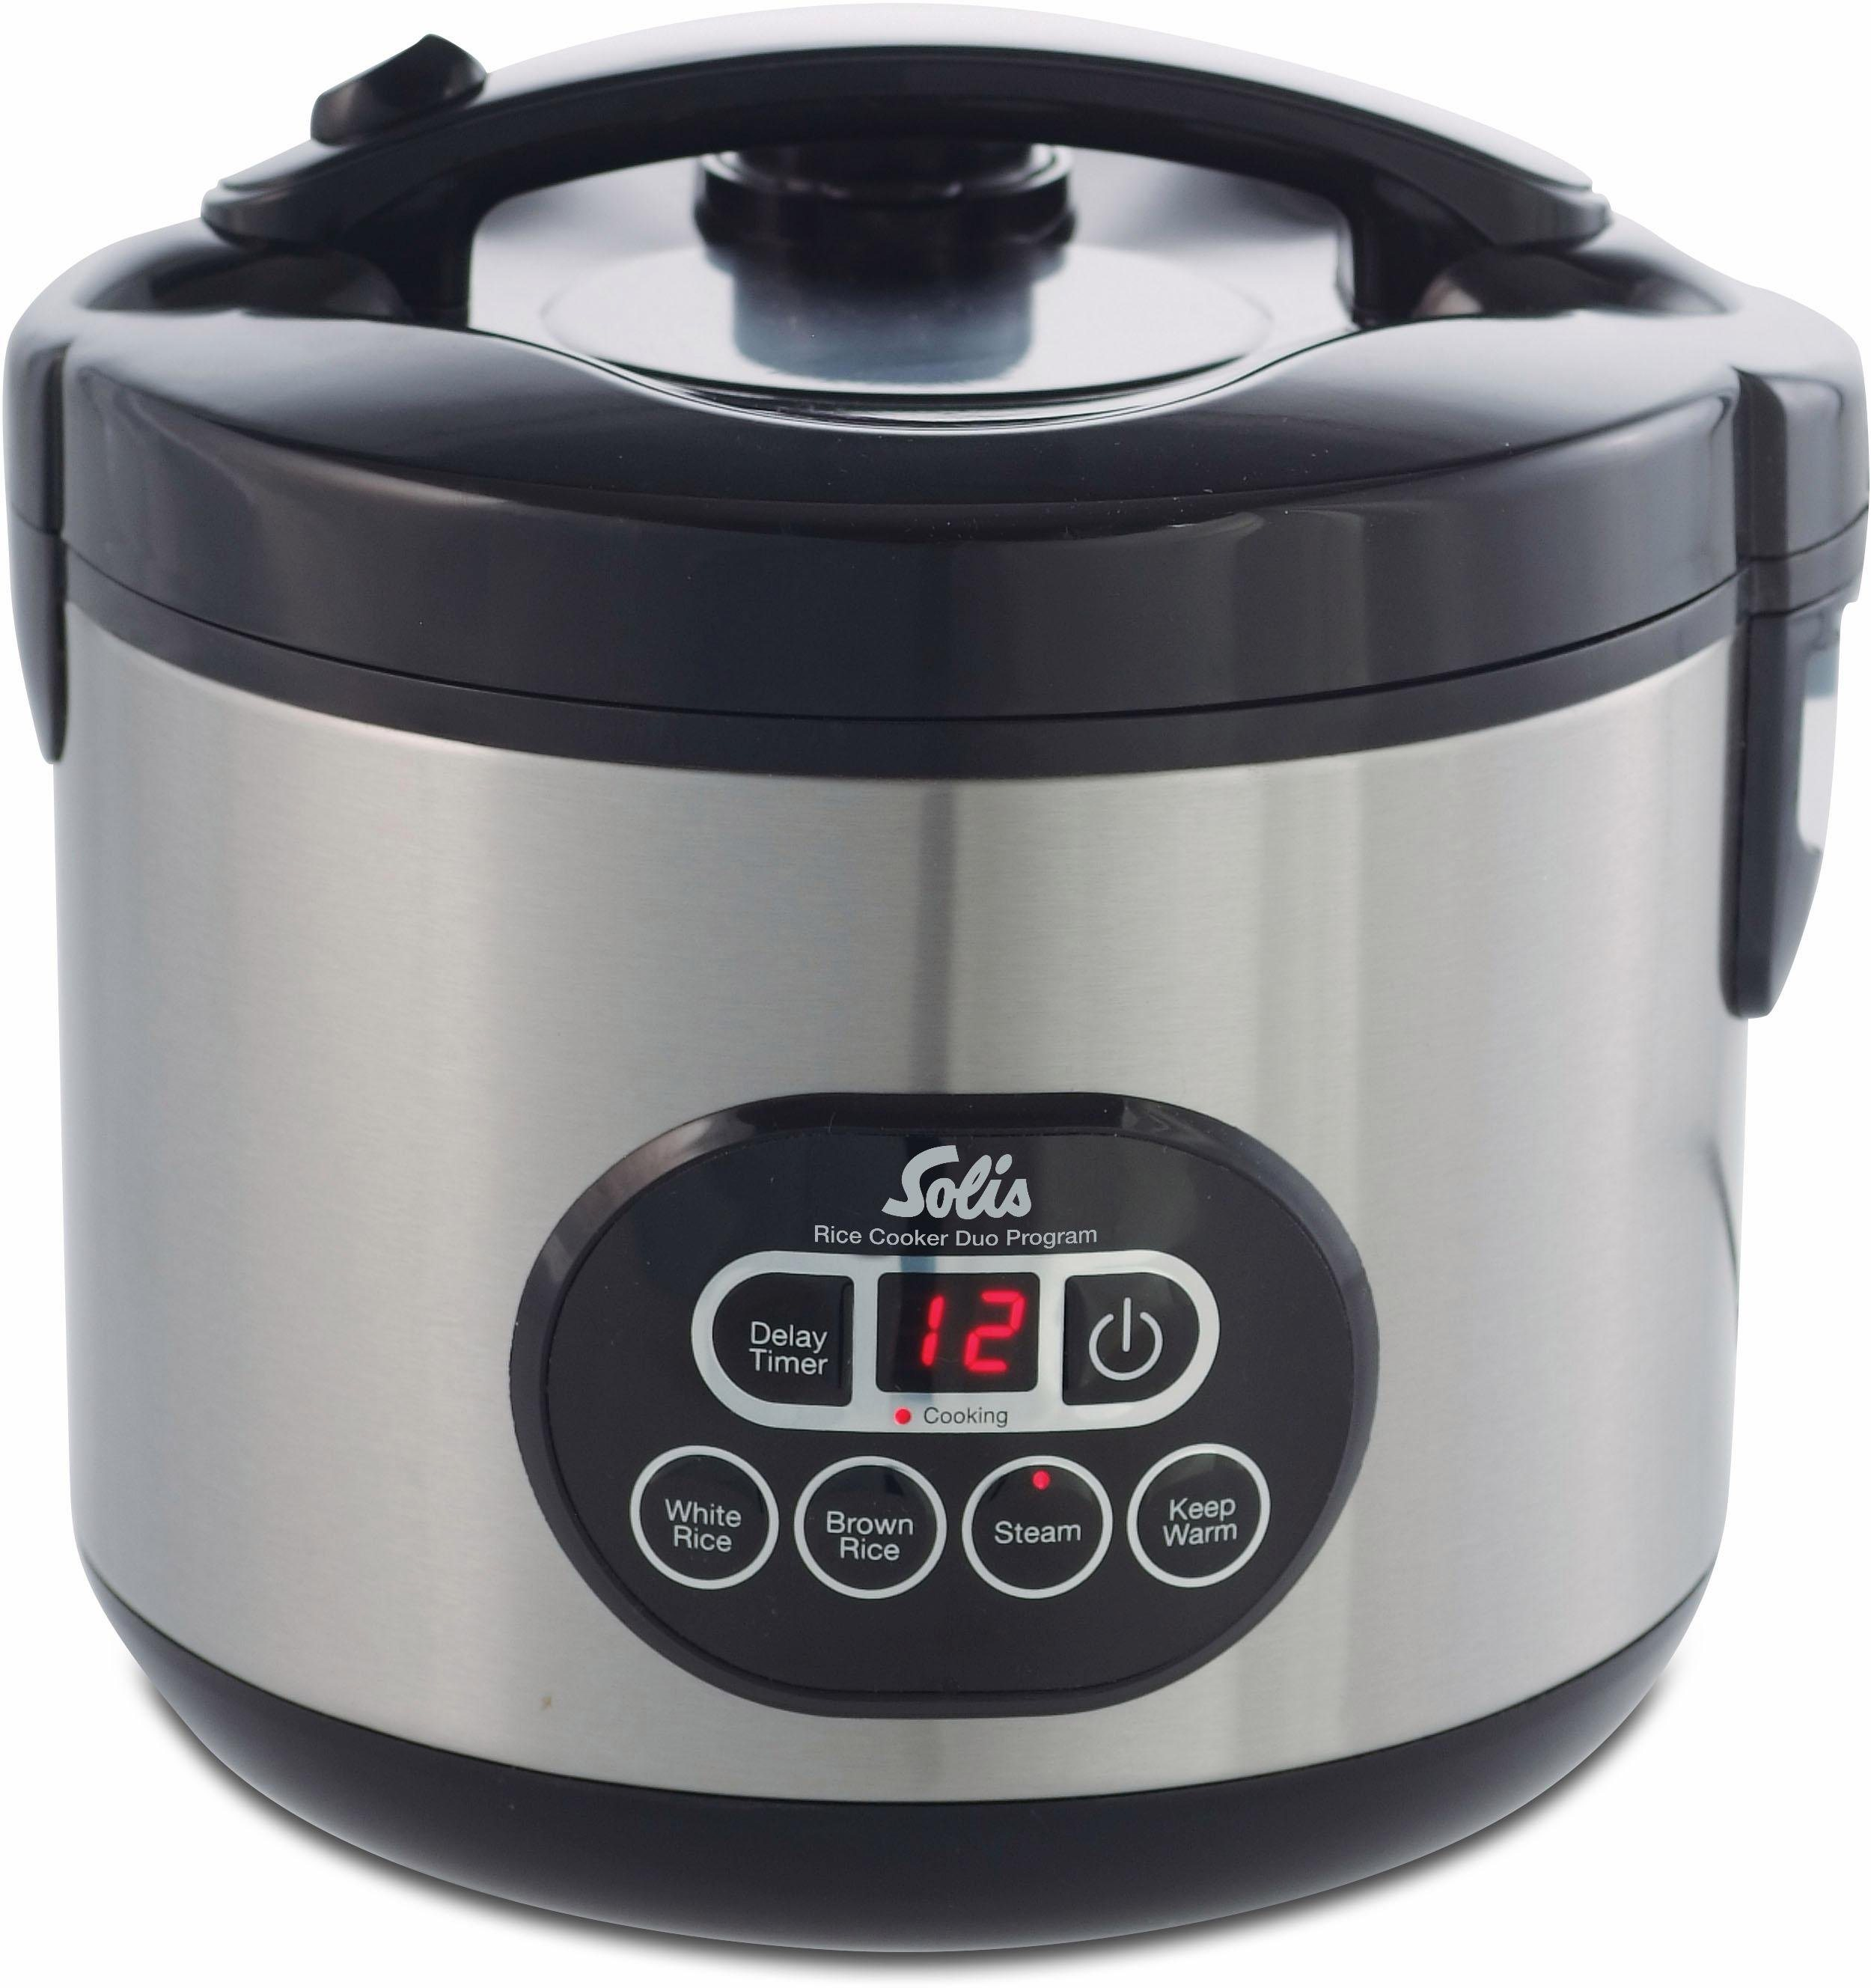 Reiskocher SOLIS Rice Cooker Duo Program, Typ 817, 500 W